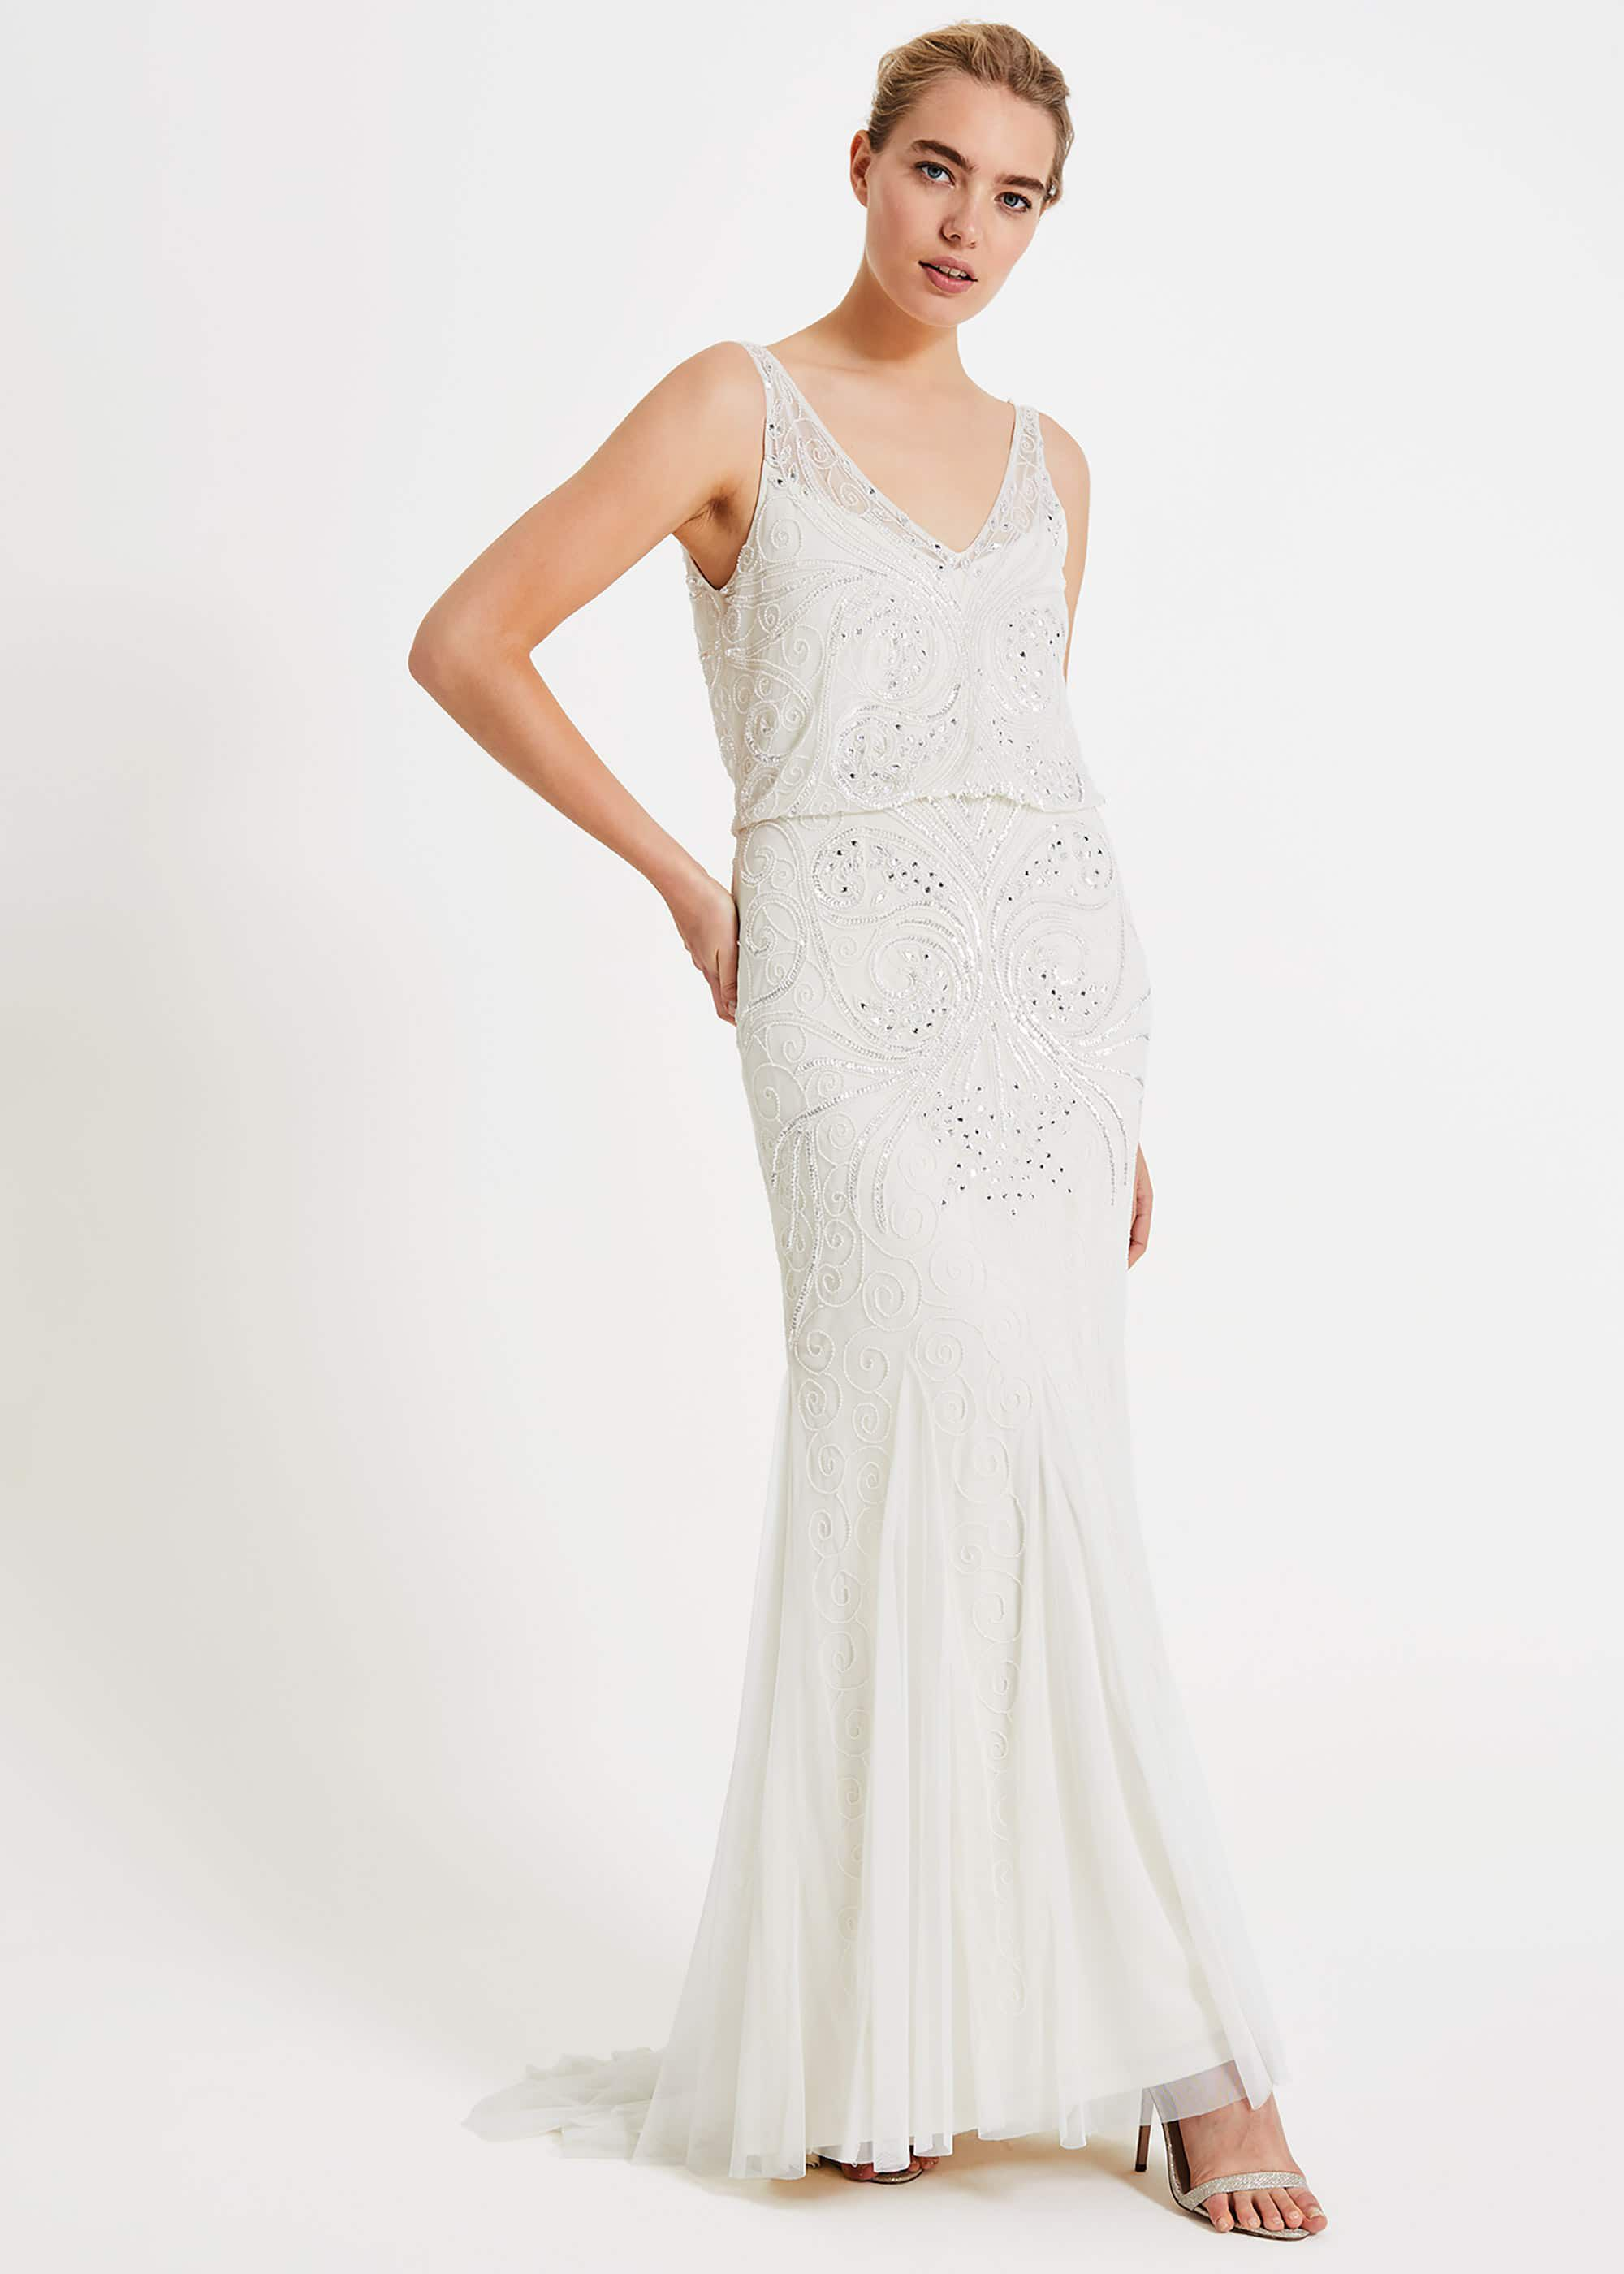 Phase Eight Cathlyn Wedding Dress, Cream, Wedding